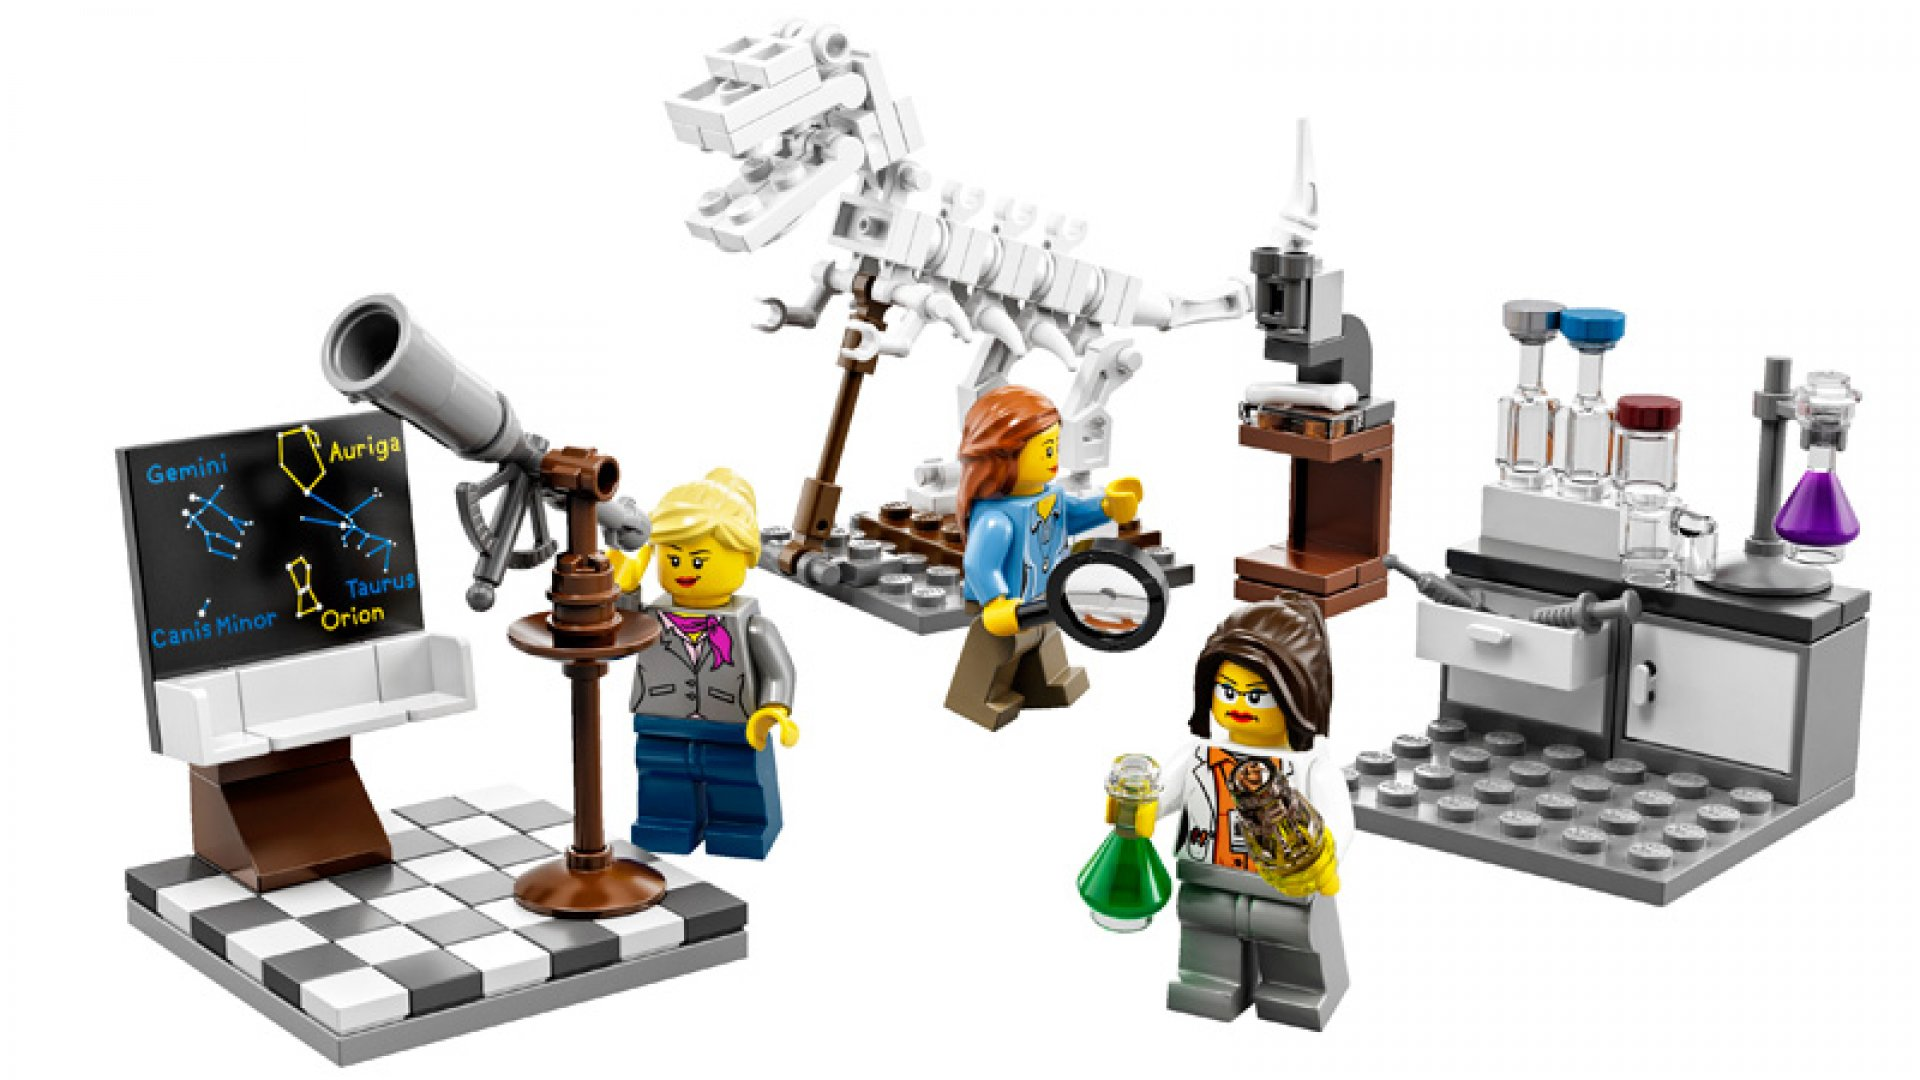 Why We Need Women in STEM